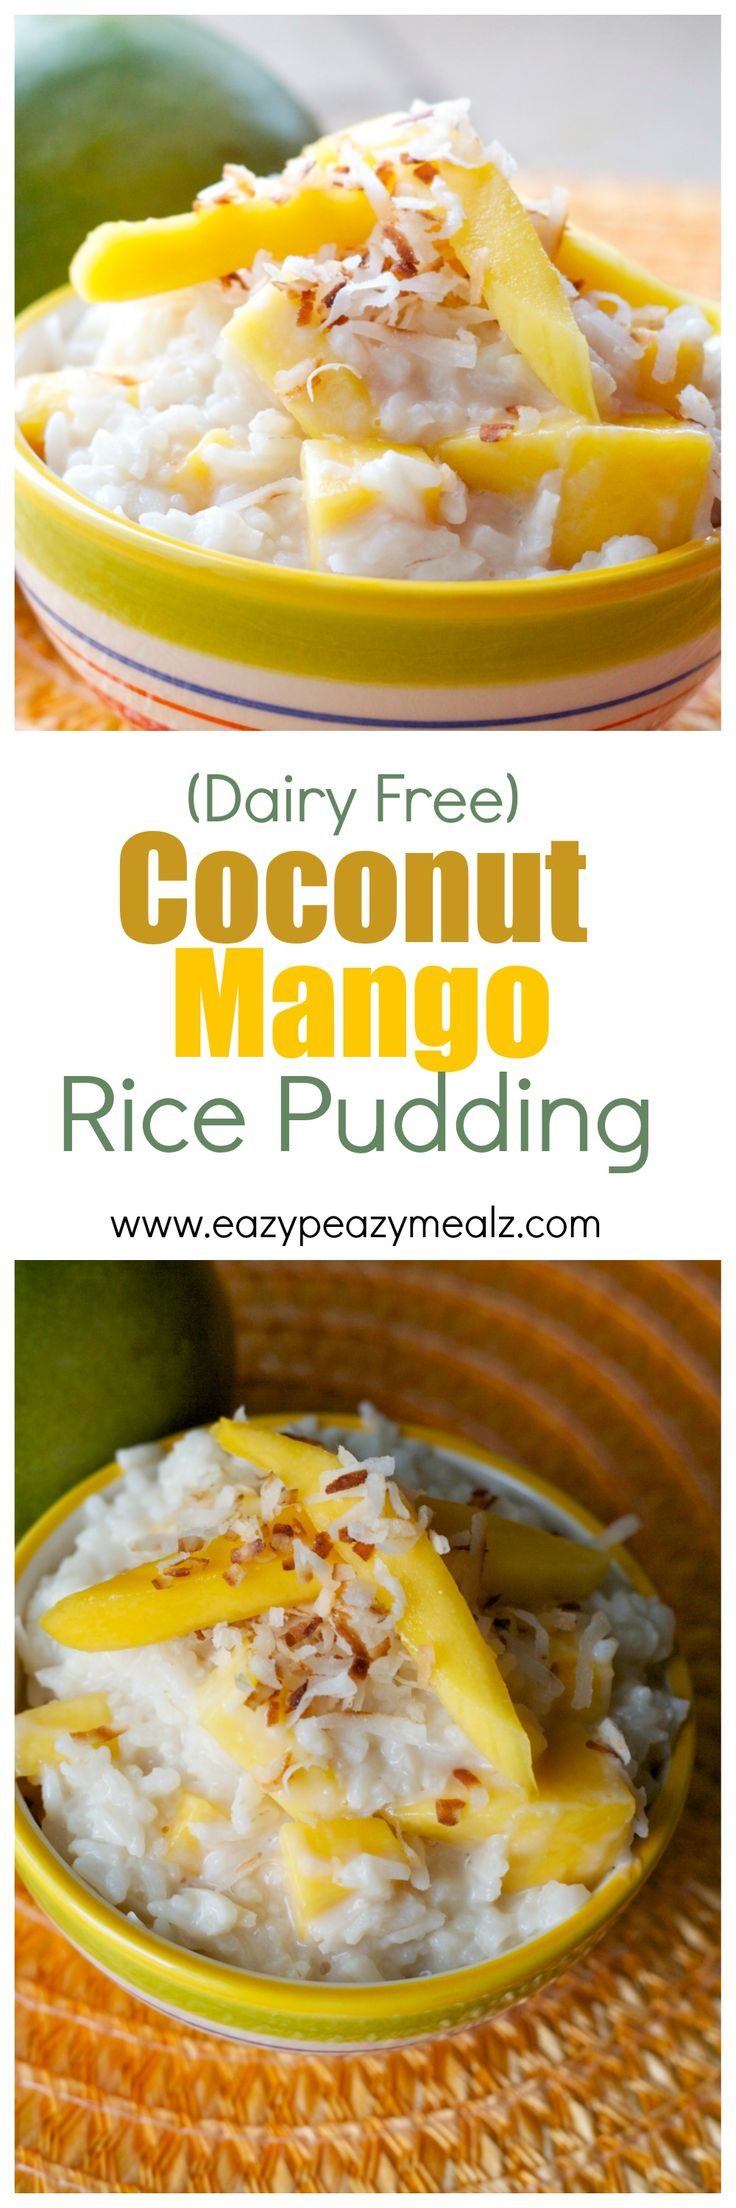 Dairy-Free & Delicious, this rice pudding offers a fun flavor profile and is easy to make! eazypeazymdealz.com